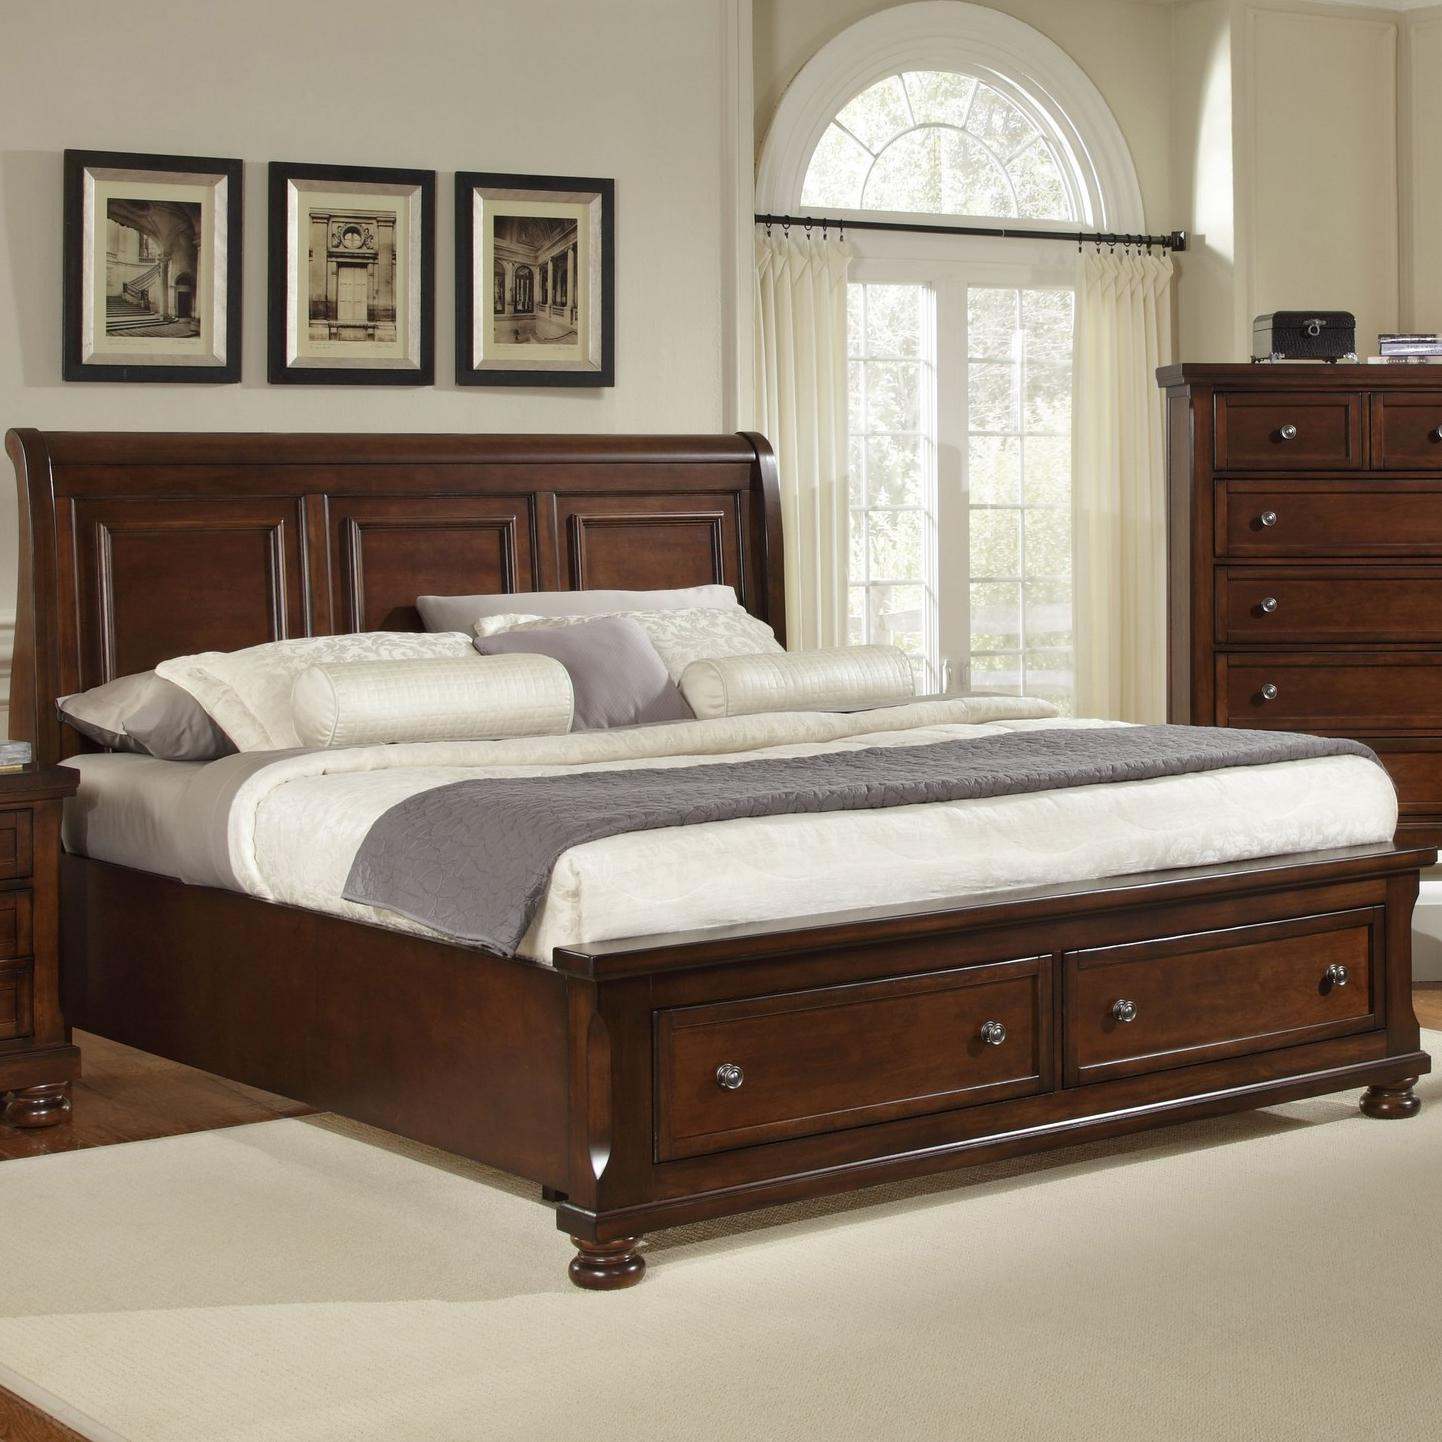 King Storage Bed With Sleigh Headboard By Vaughan Bassett